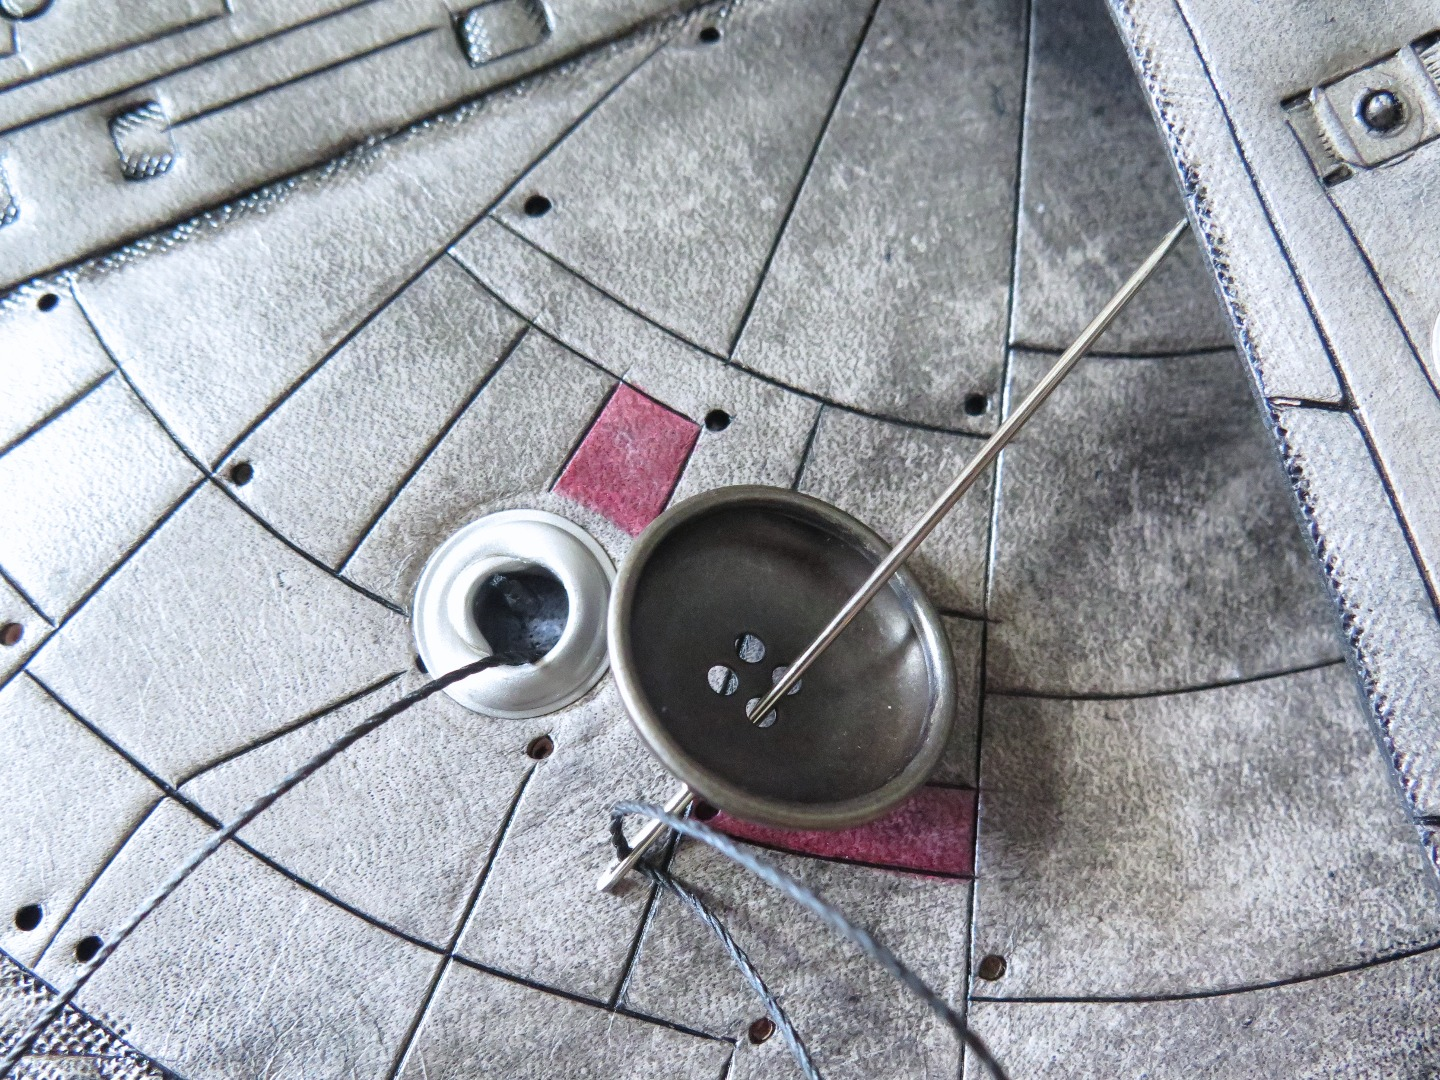 Picture of Attaching the Sensor Dish